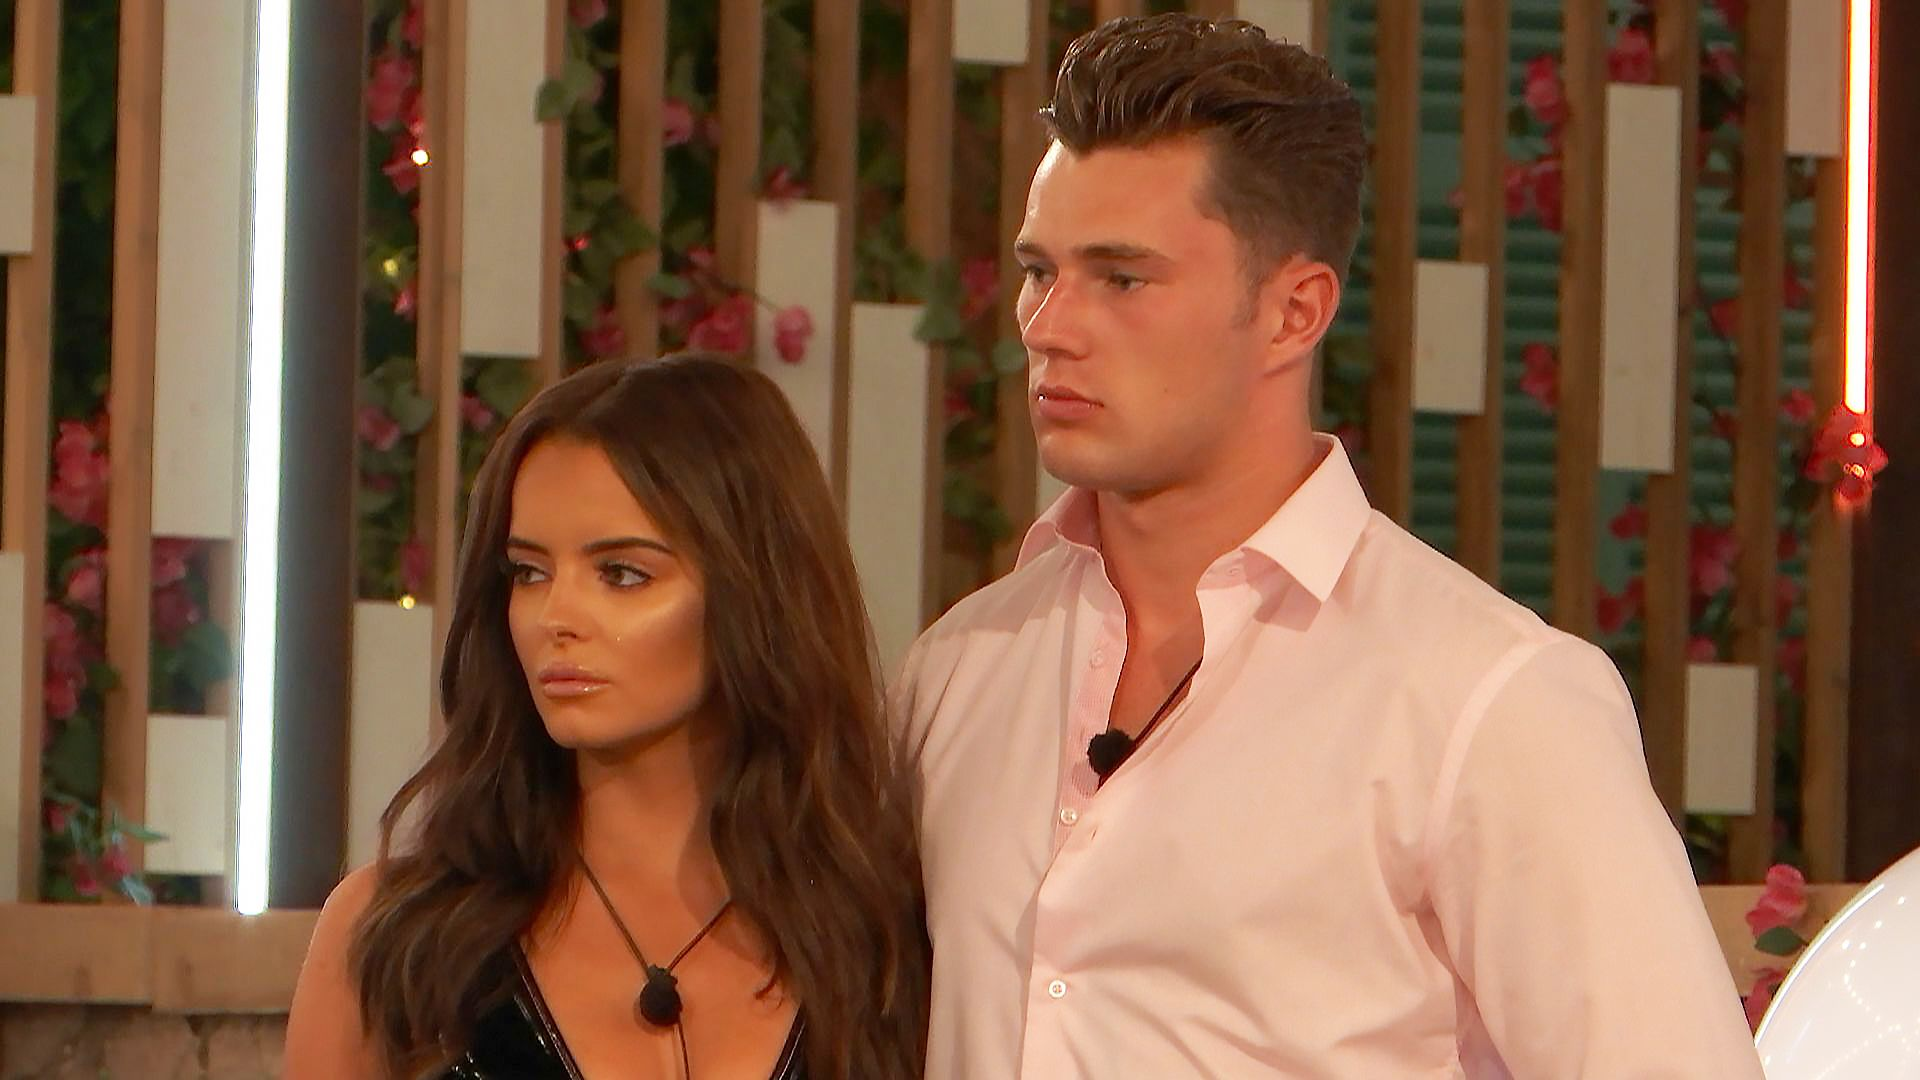 Love Island's Curtis Pritchard discusses how his and Maura Higgins' busy schedules affect their relationship